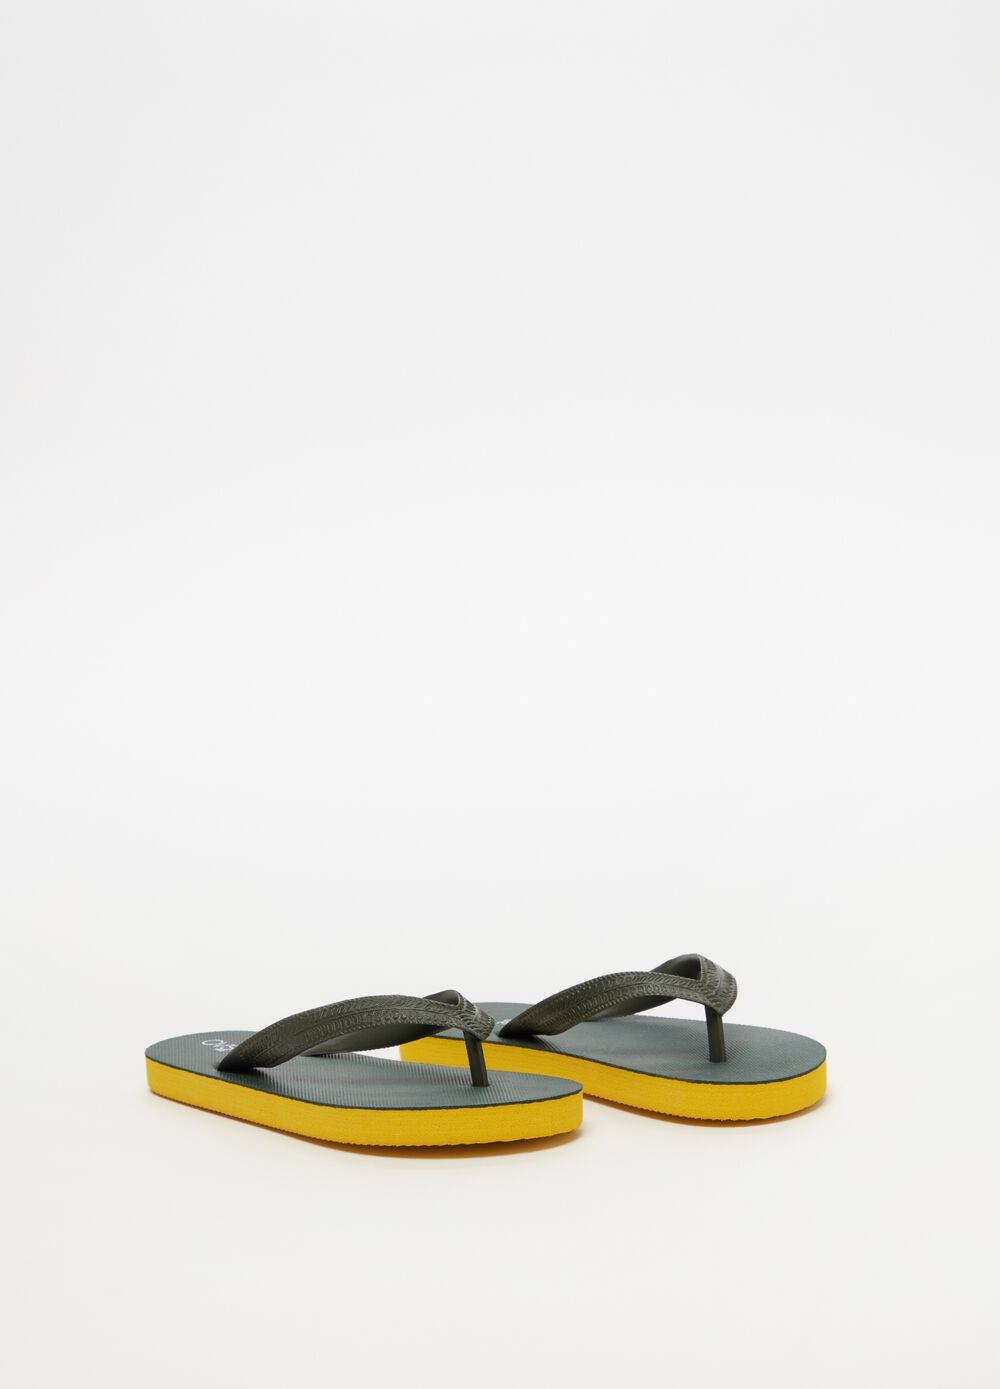 Two-tone thong sandals with geometric laces